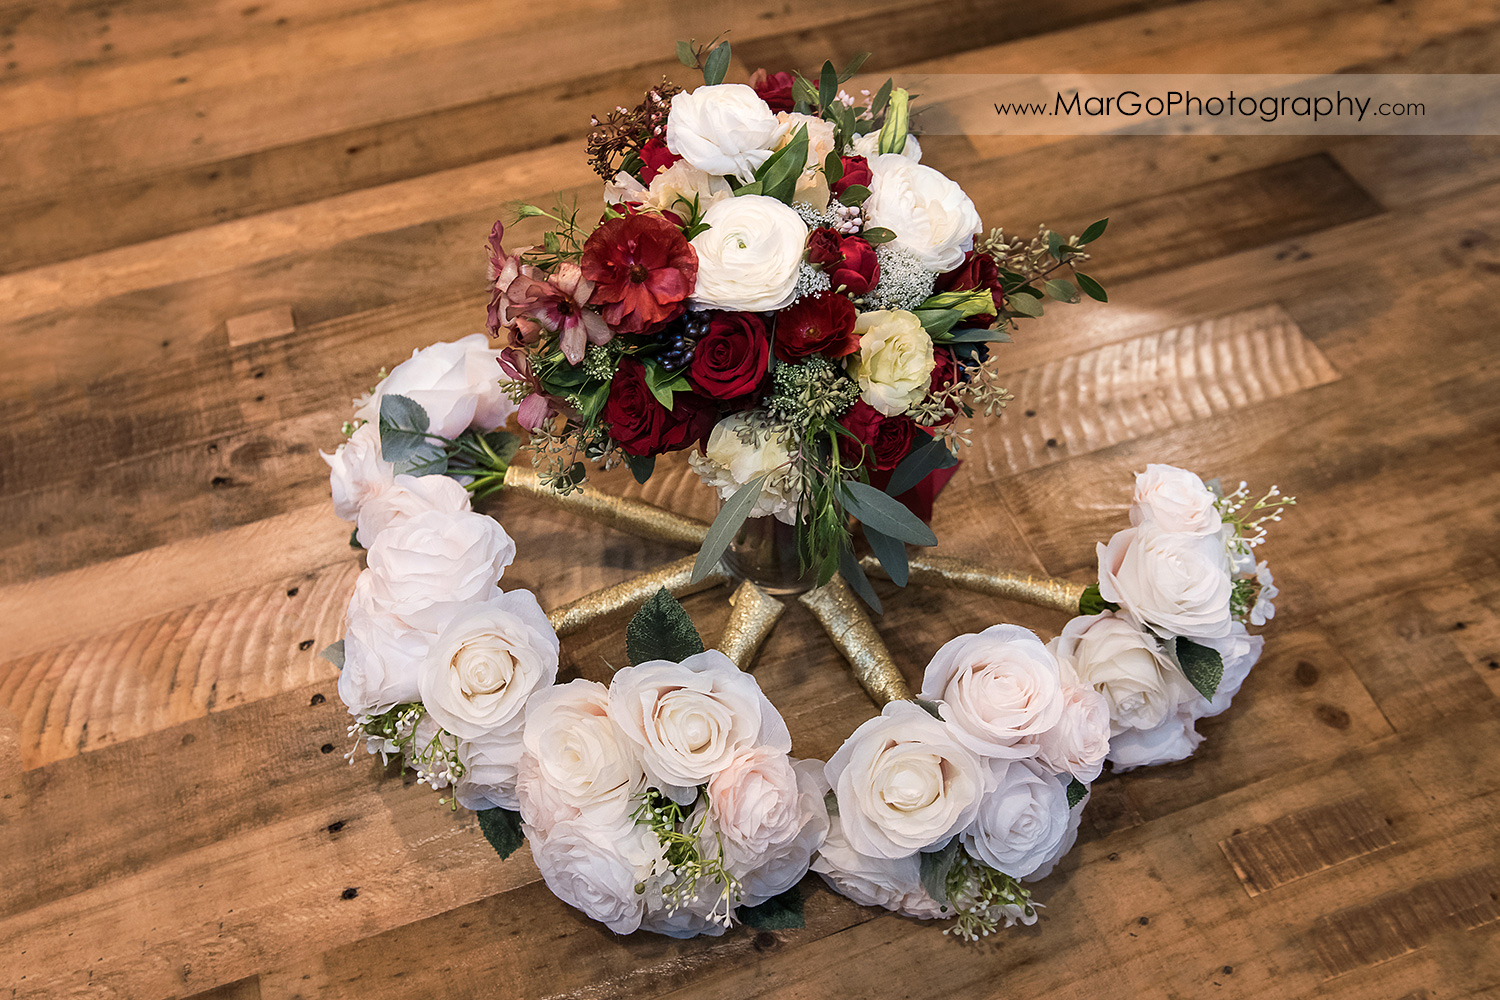 white and red flower wedding bouquets on wooden floor at Sunol's Casa Bella